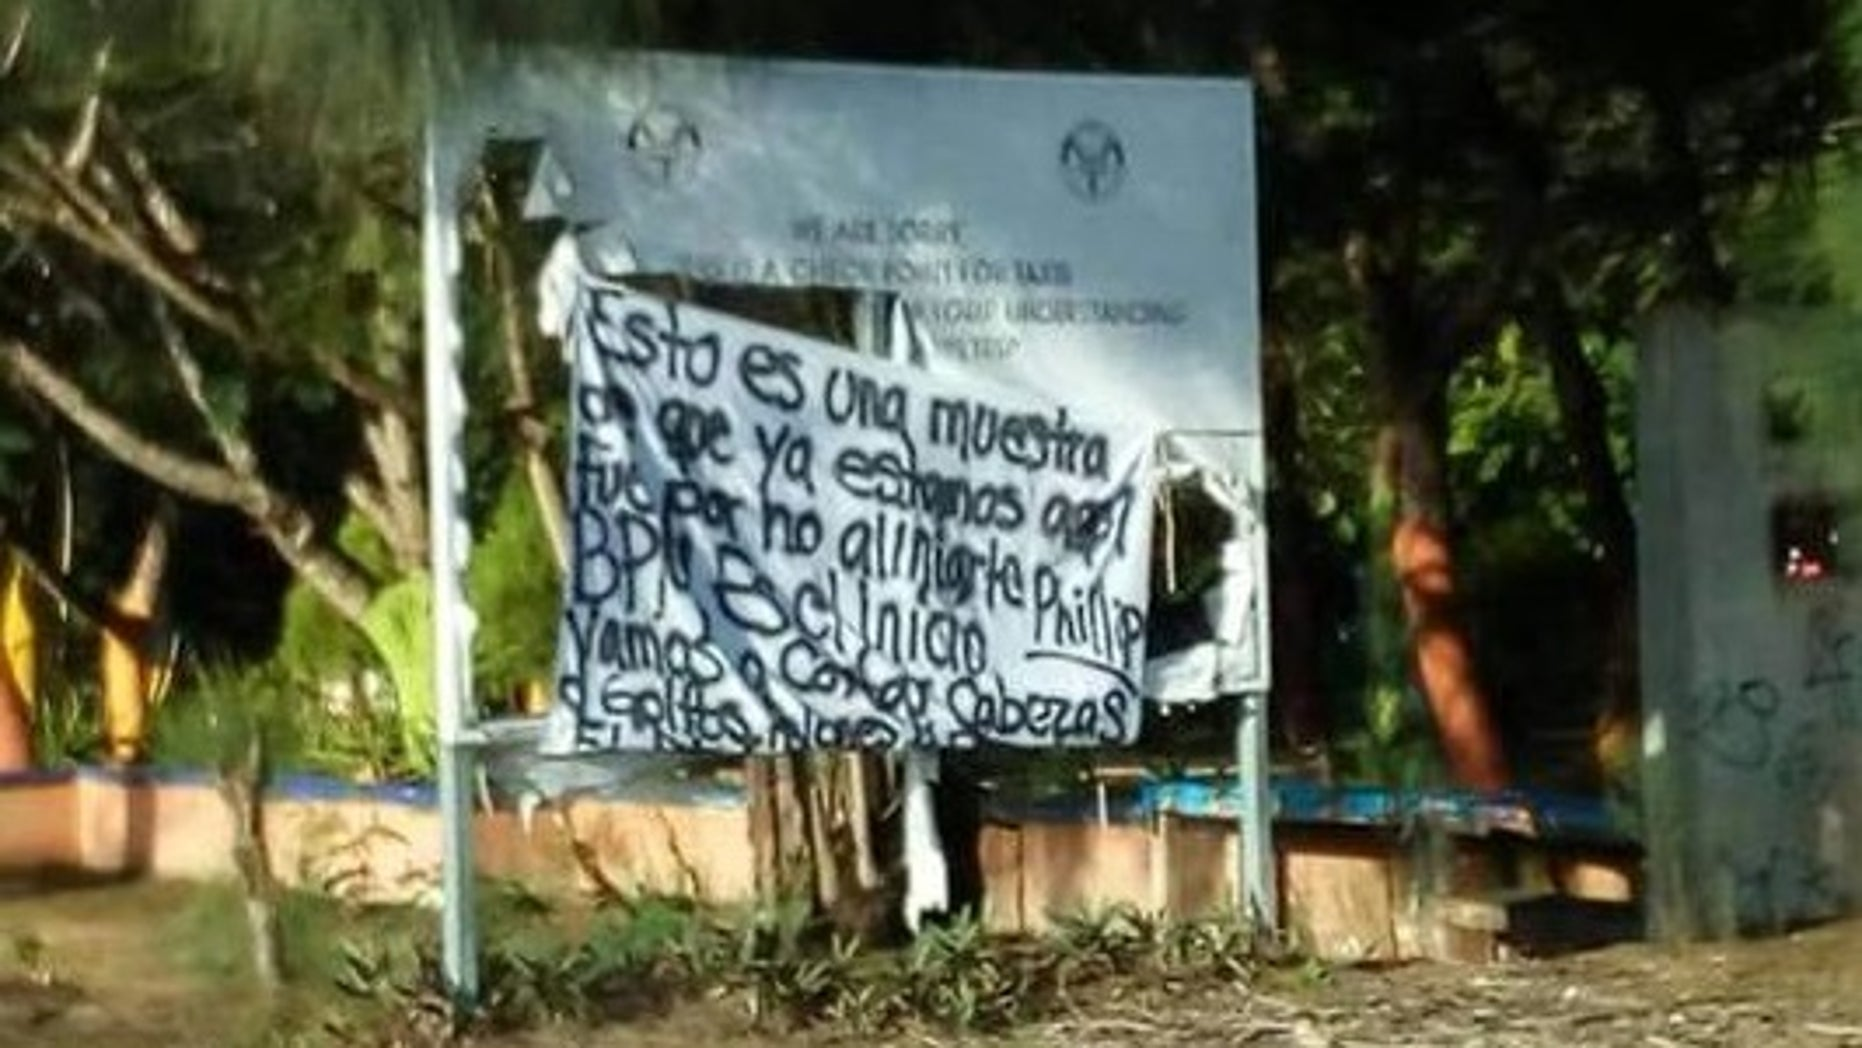 Four separate messages with the same text appeared Tuesday morning in Playa del Carmen.